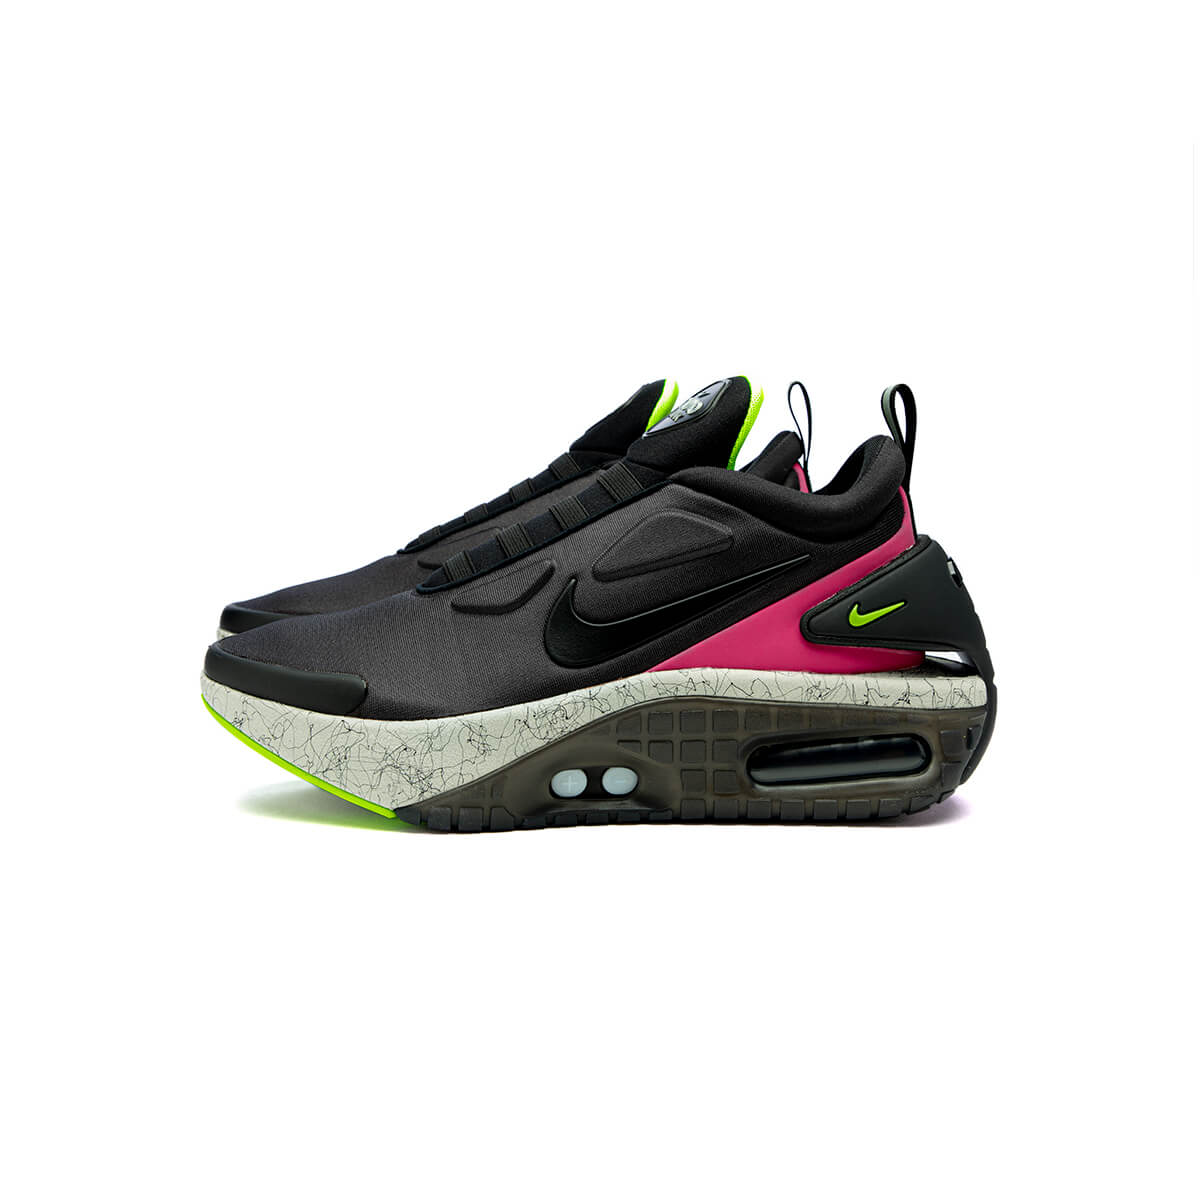 Conceptsintl Nike Adapt Auto Max Black Black Fireberry Electric Green